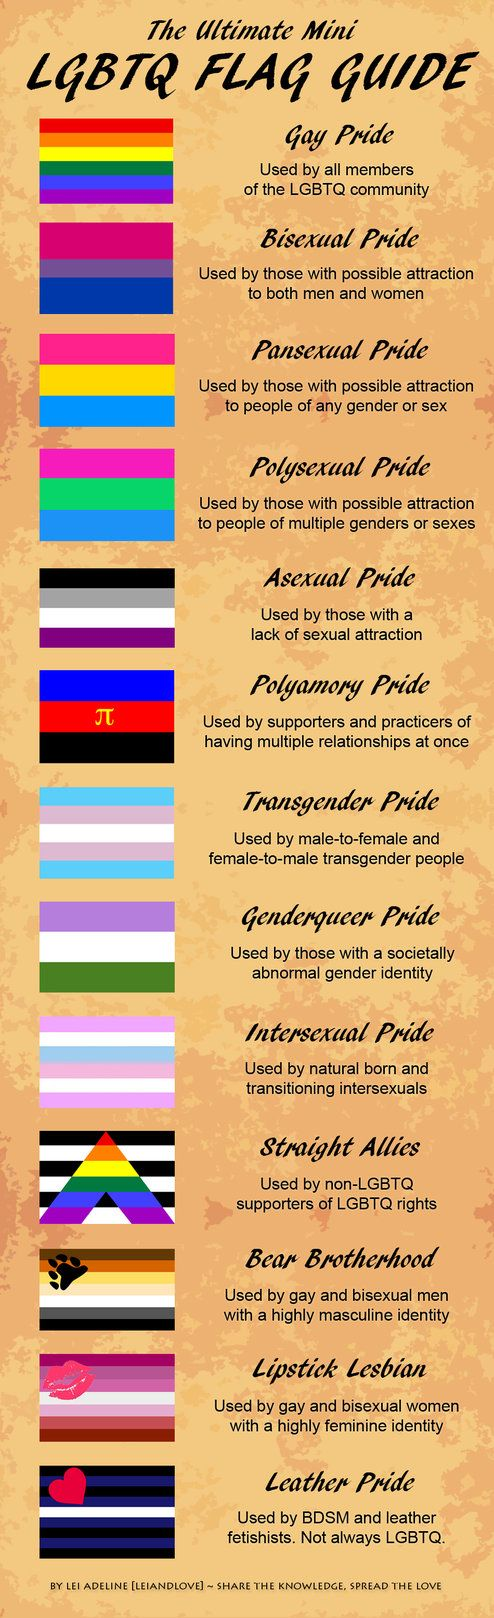 The Ultimate Mini LGBTQ Flag Guide...? So Where is the Butch Lesbian Flag...? Oh yeah, that's right, we don't exist do we...!